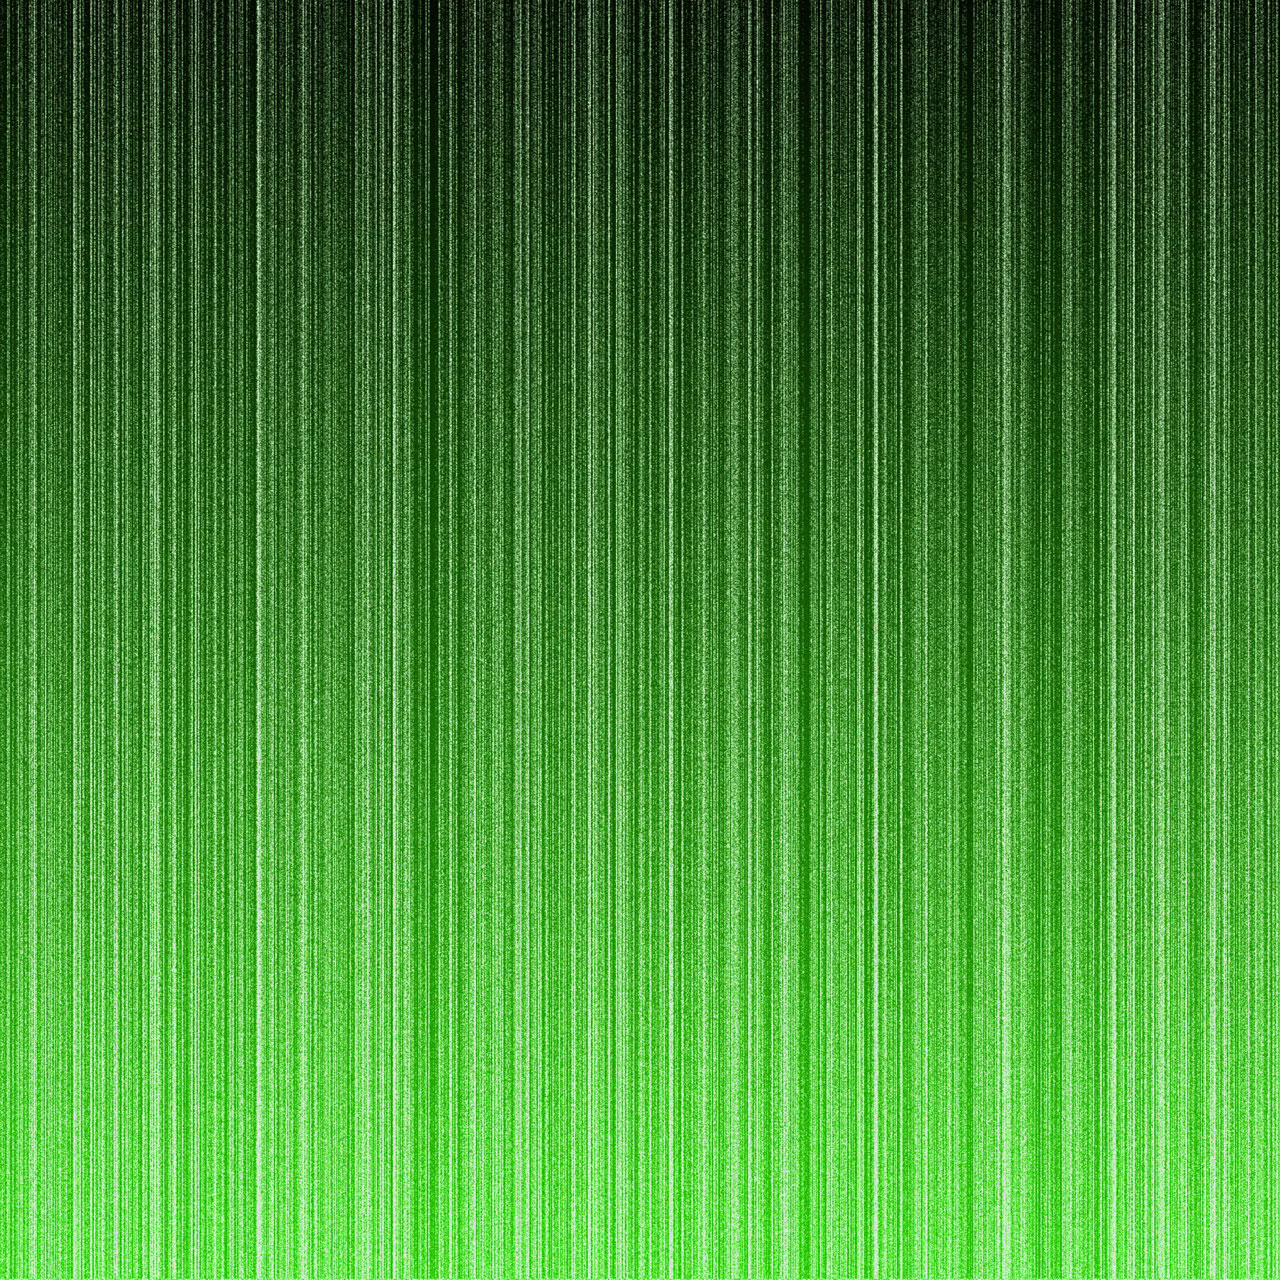 Wallpaper Iphone Pastel Green Neon Lines Free Stock Photo Public Domain Pictures